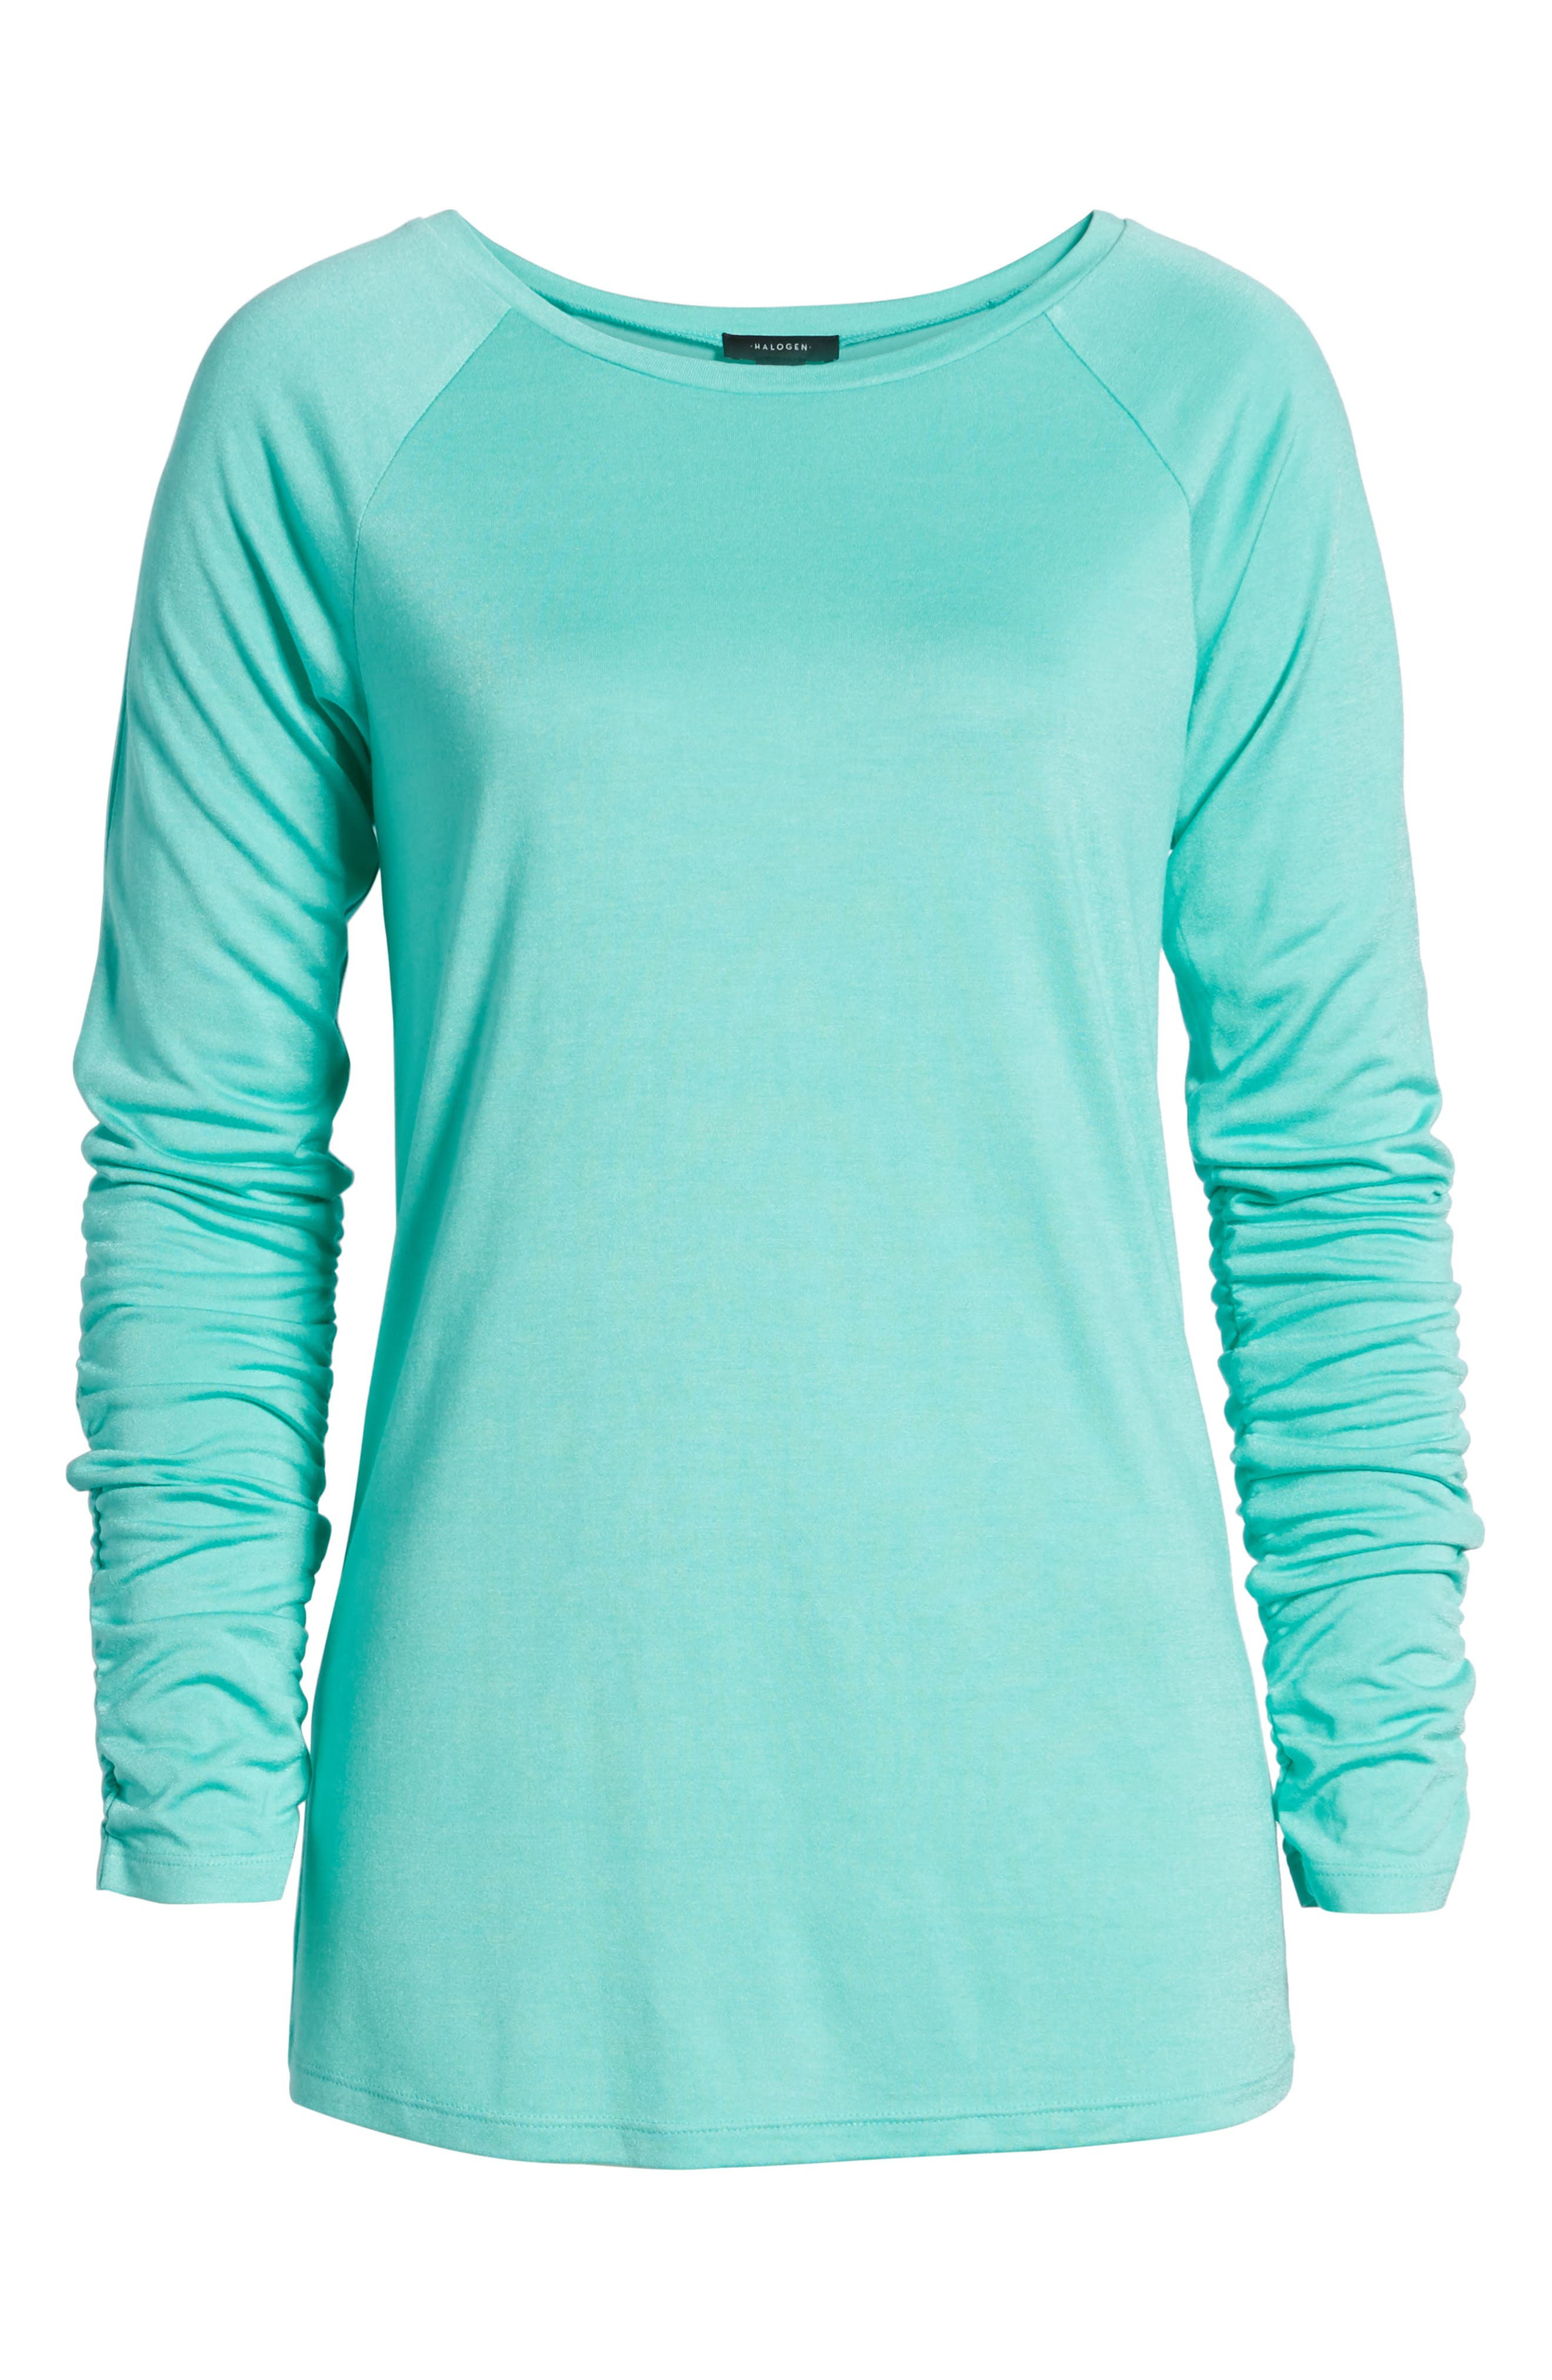 Ruched Sleeve Tee,                             Alternate thumbnail 23, color,